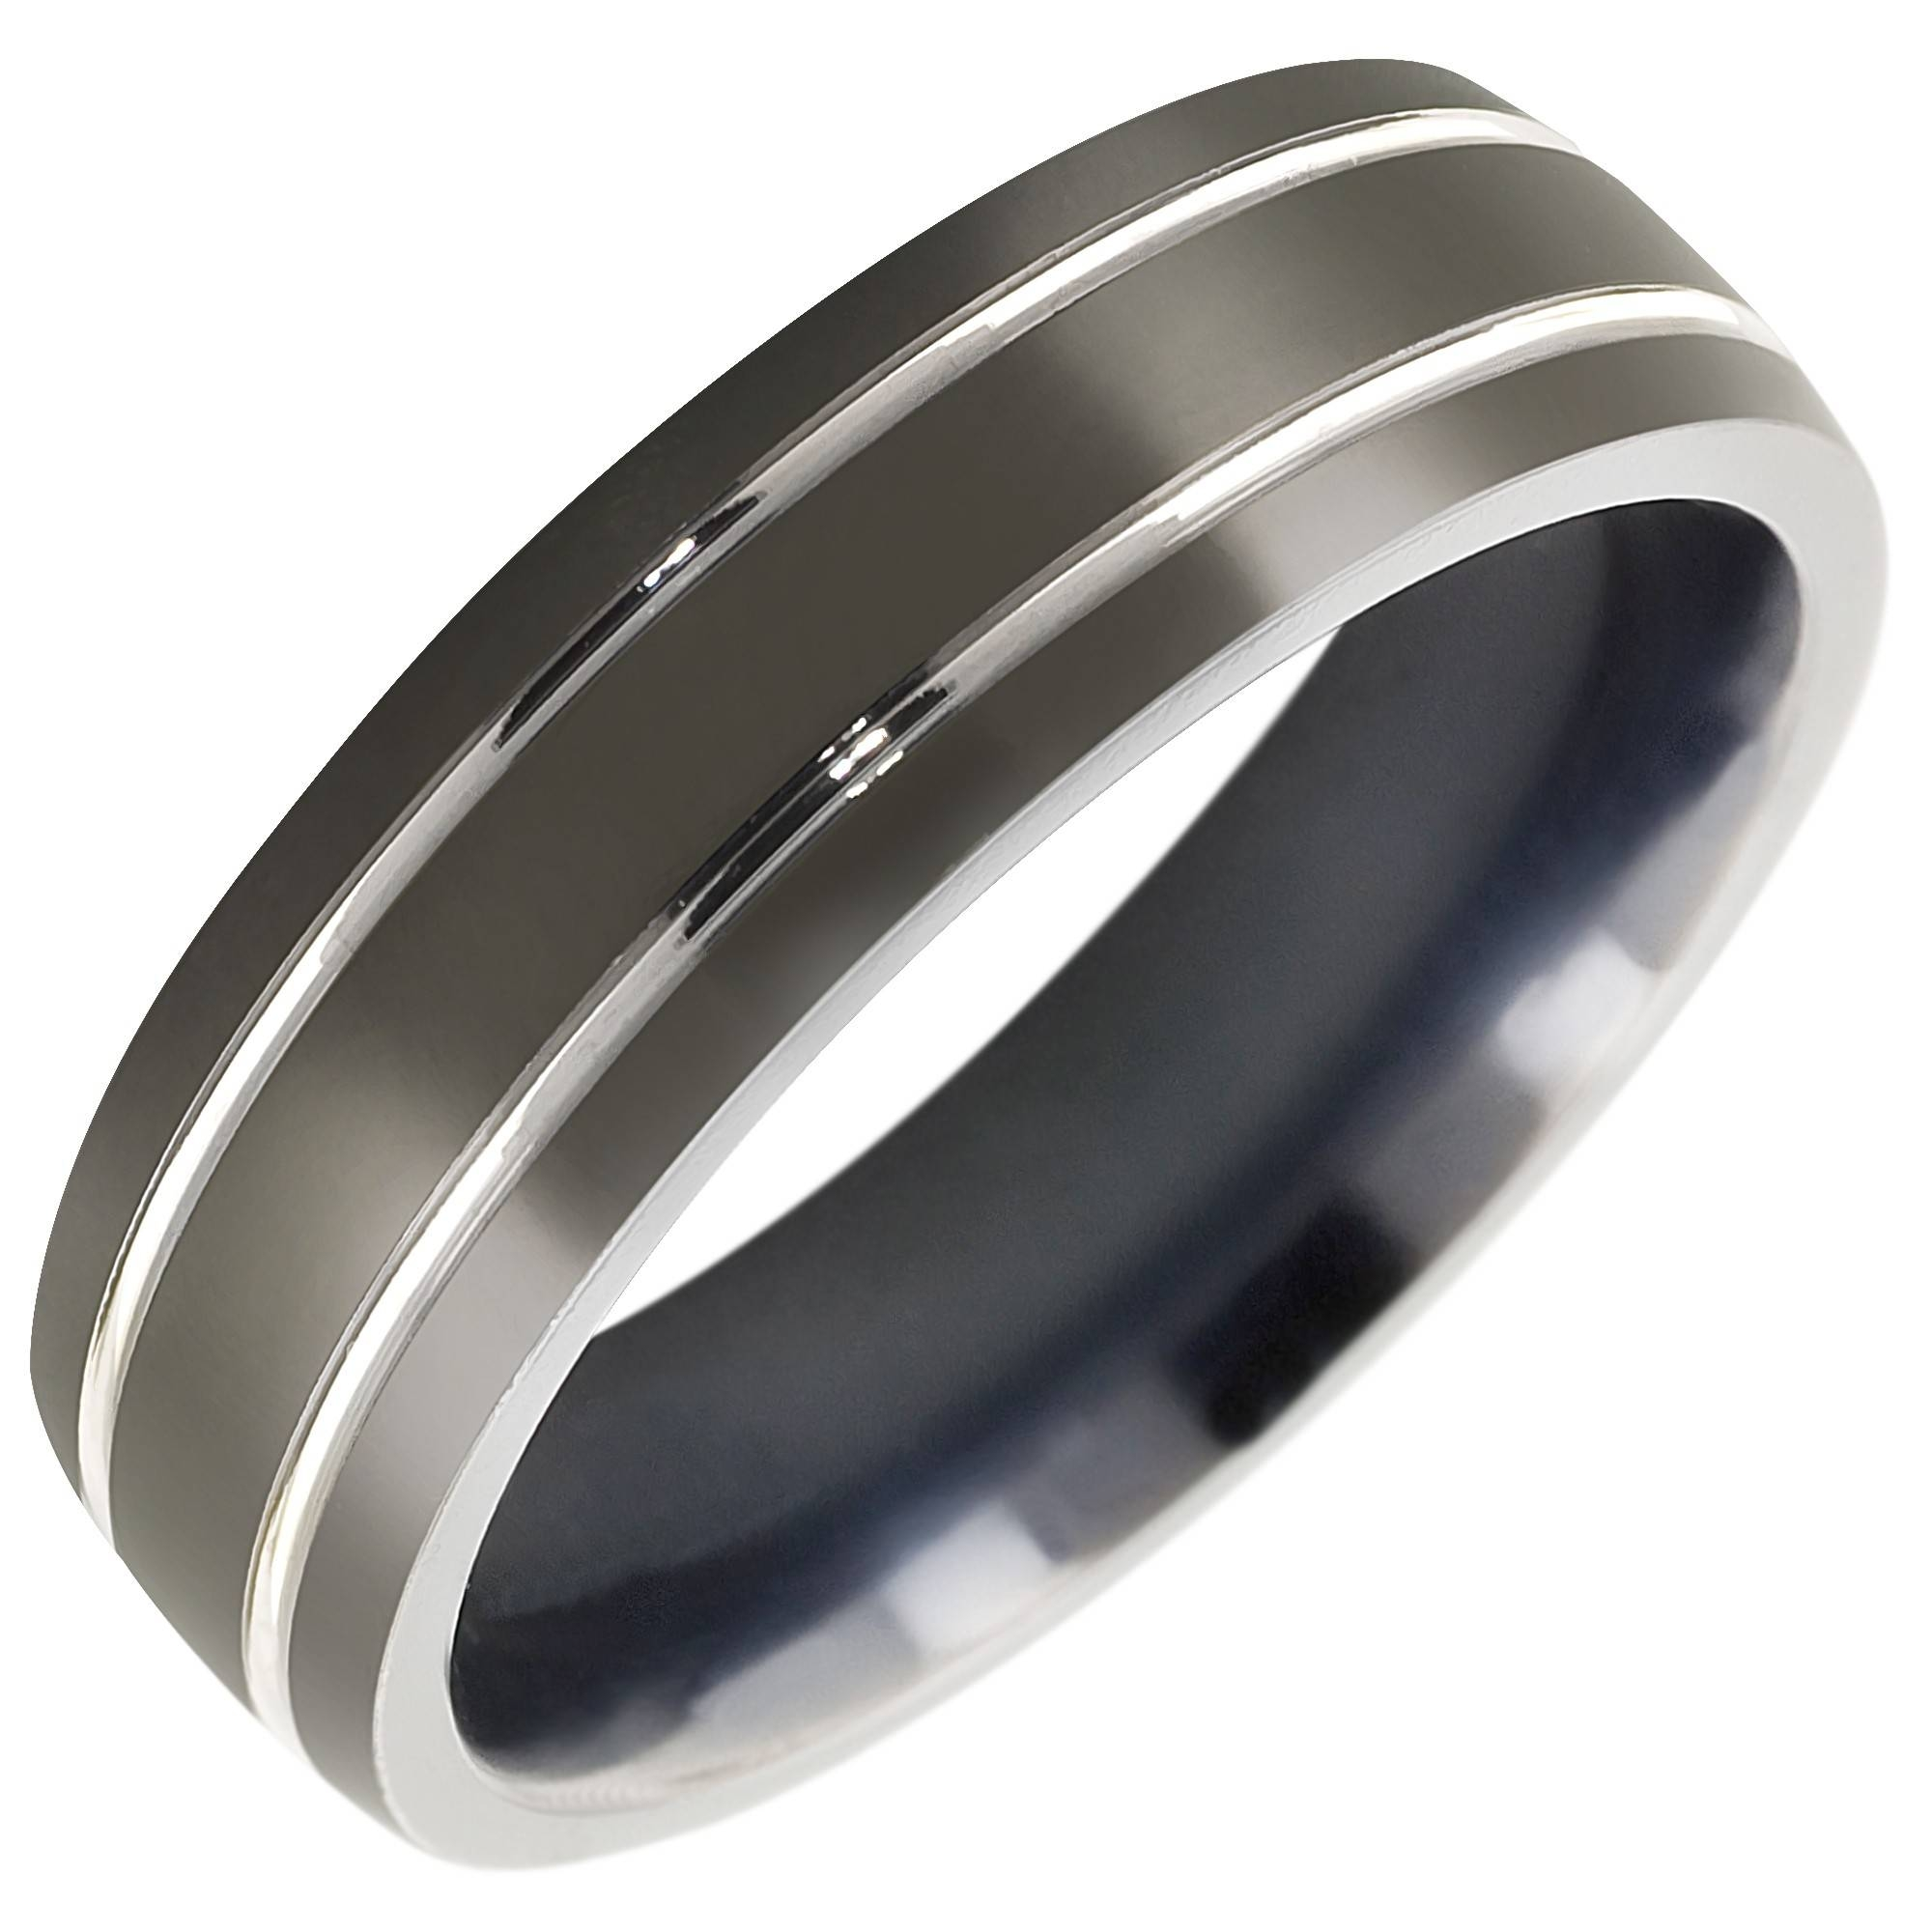 Mens Comfort Fit Wedding Band In Titanium (7Mm) With Regard To 7Mm Titanium Wedding Bands (Gallery 6 of 15)